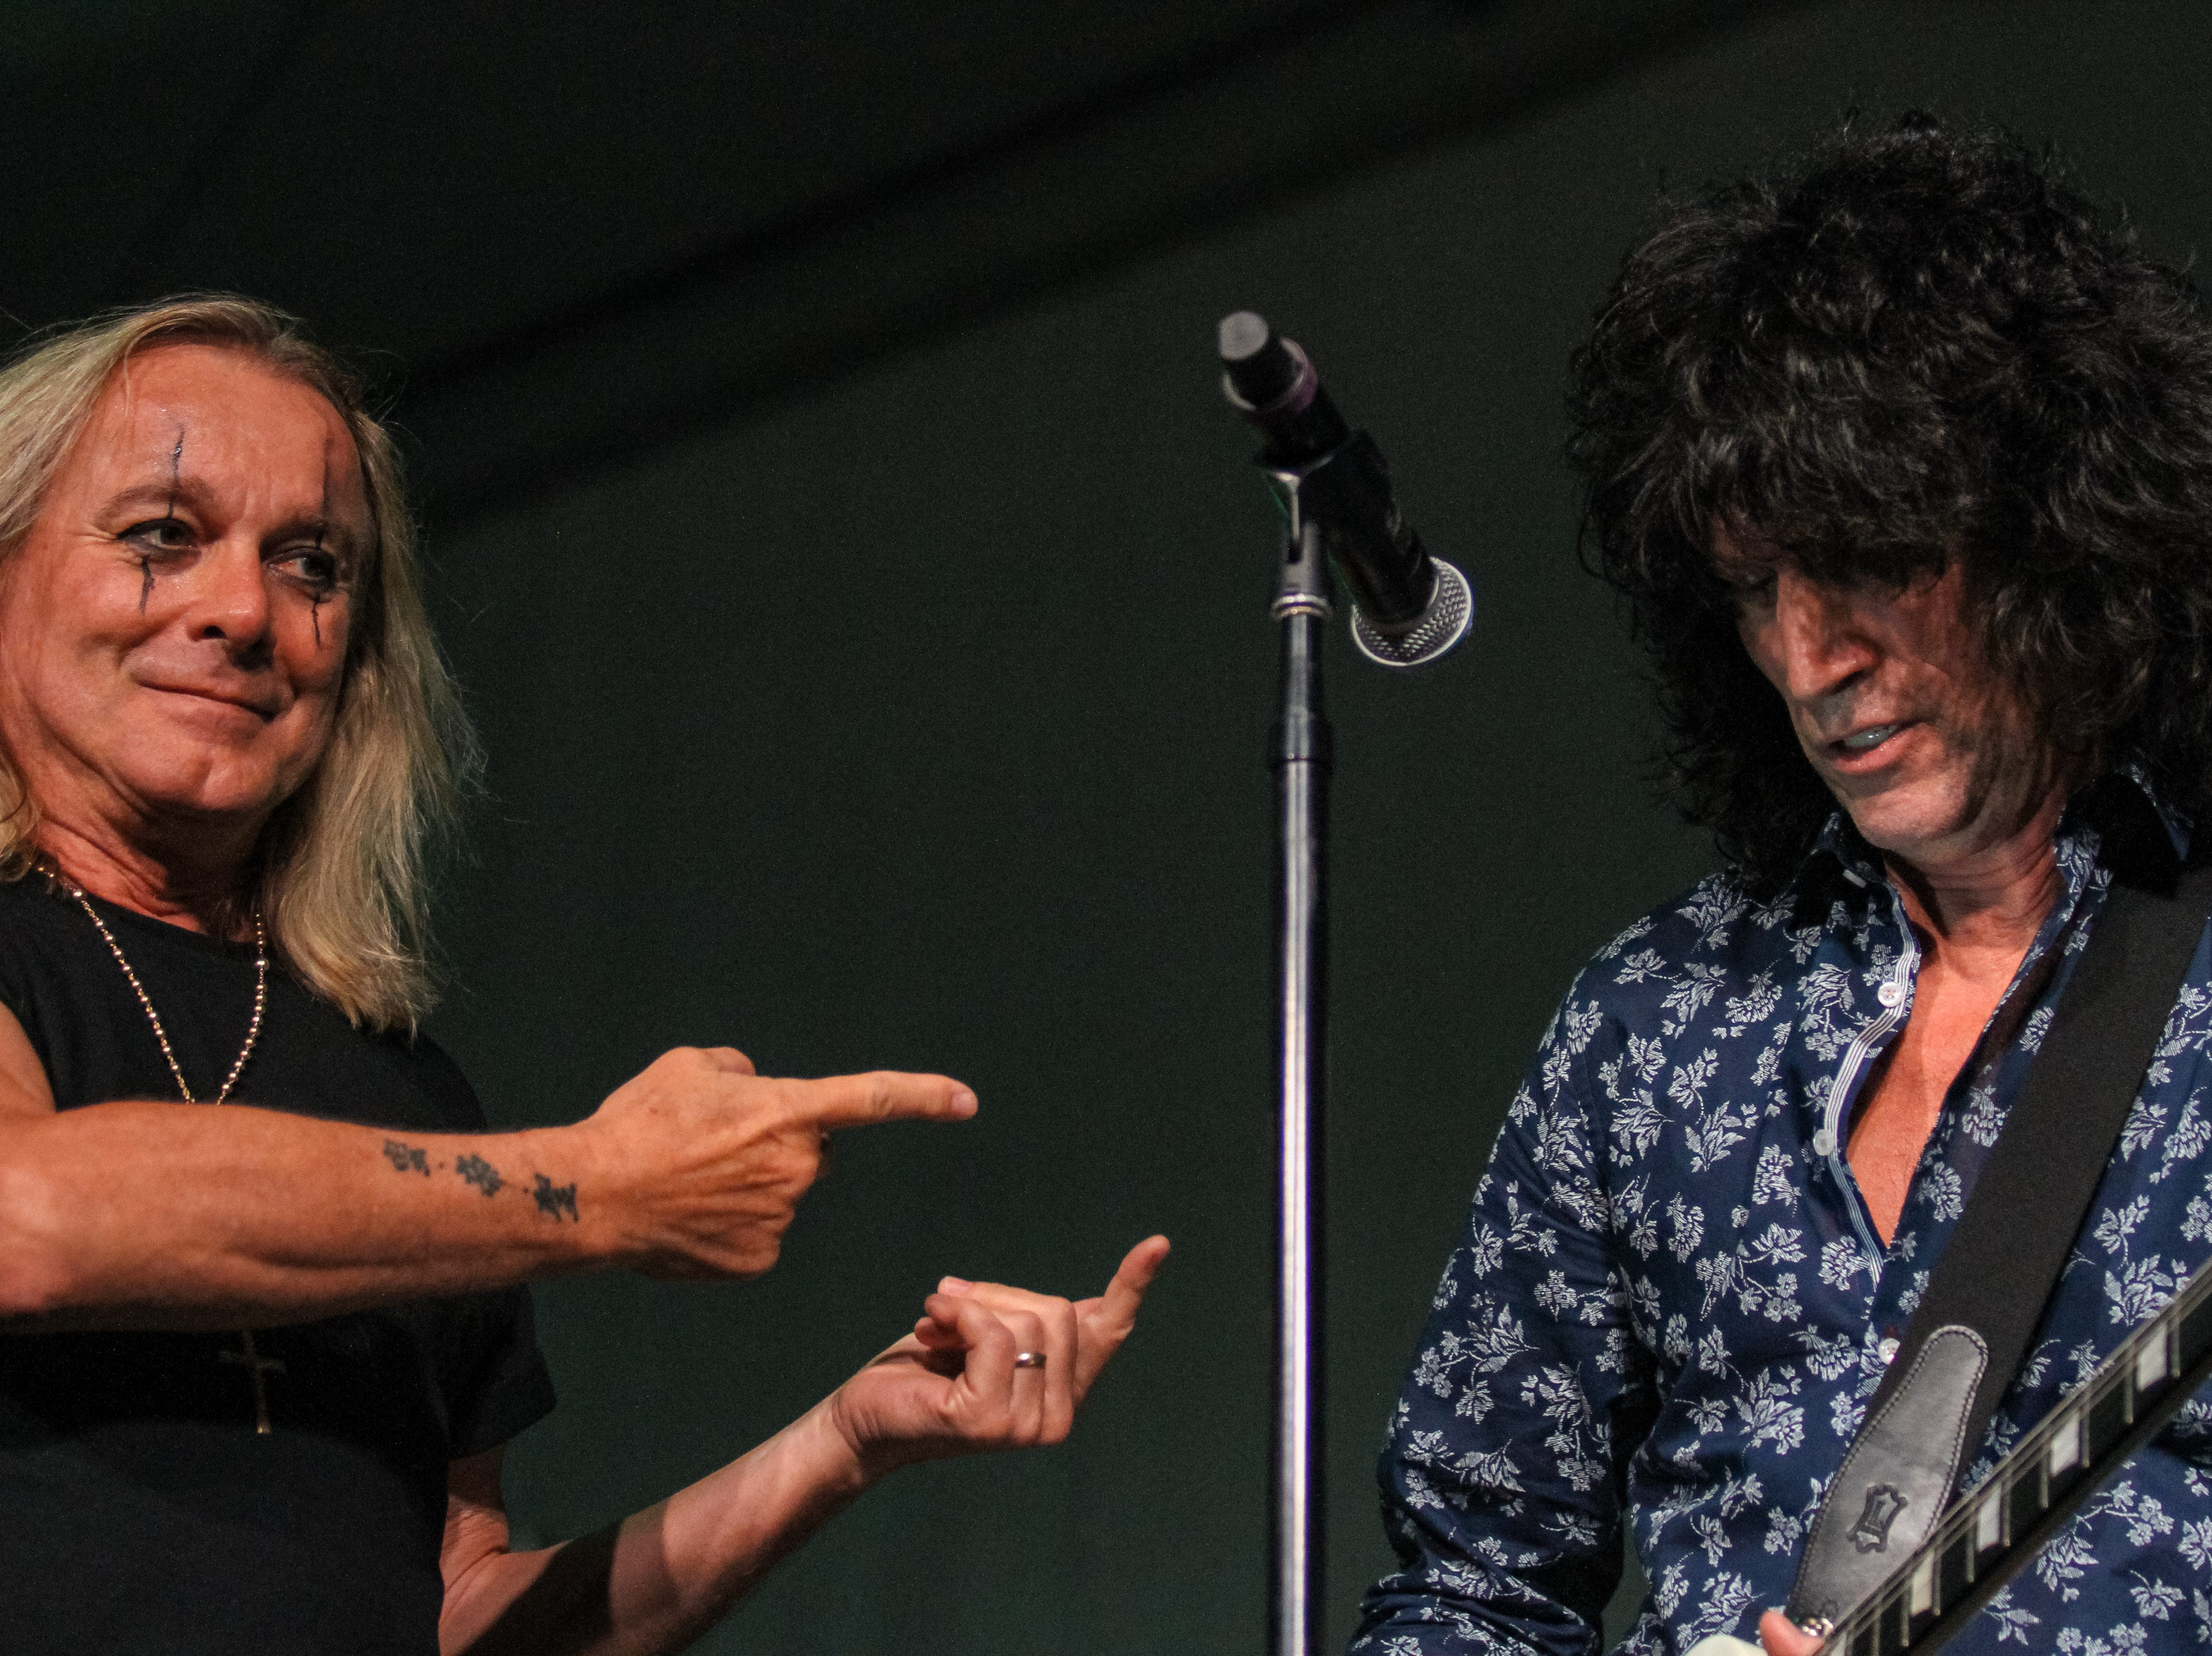 Tommy Thayer of Kiss and Robin Zander of Cheap Trick perform at Alice Cooper's Rock & Roll Fundraising Bash at the Las Sendas Golf Club in Mesa on April 27, 2019.